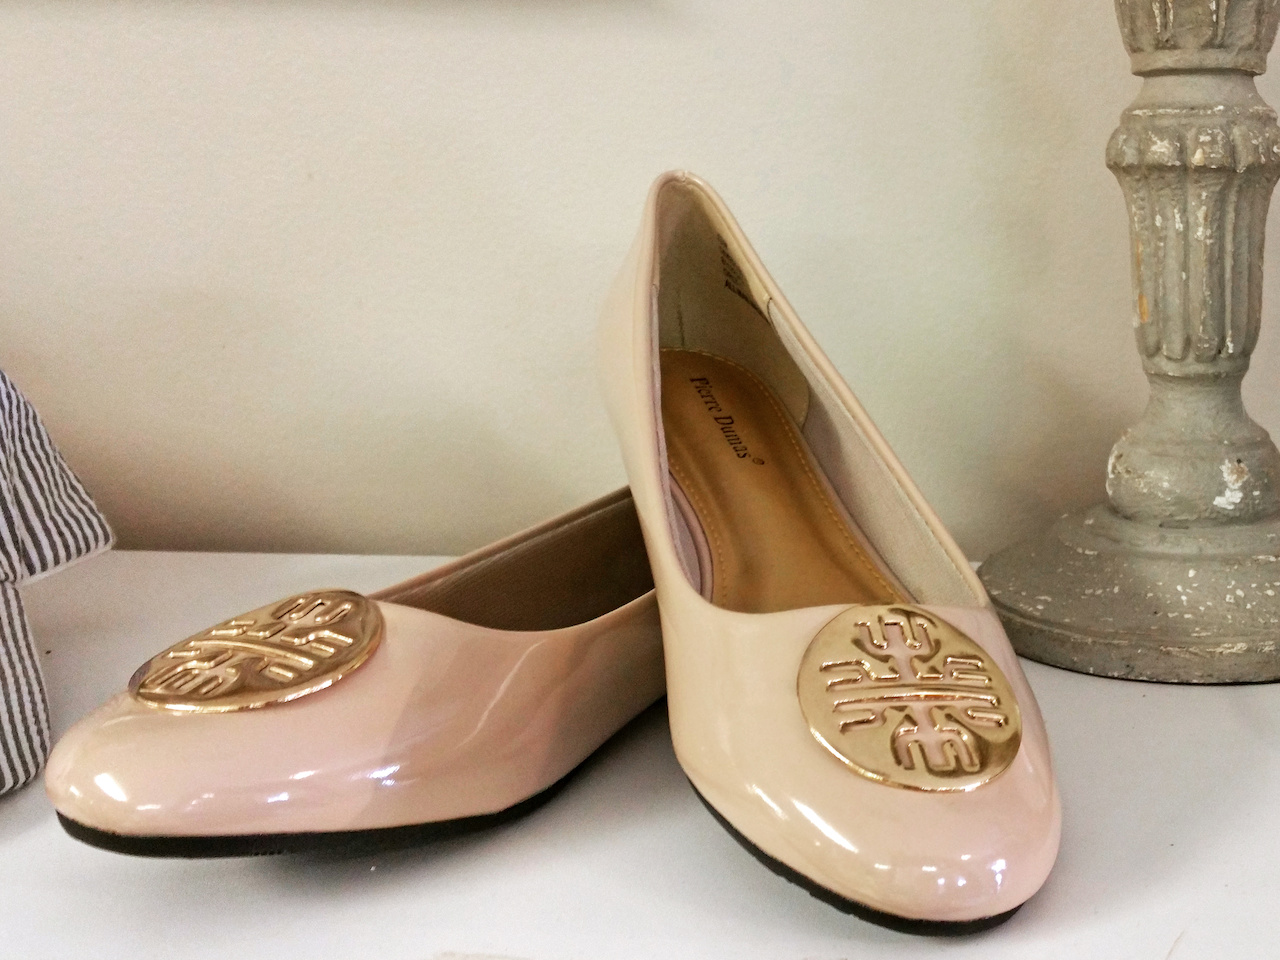 Gorgeous flats at The Ivory Orchid boutique